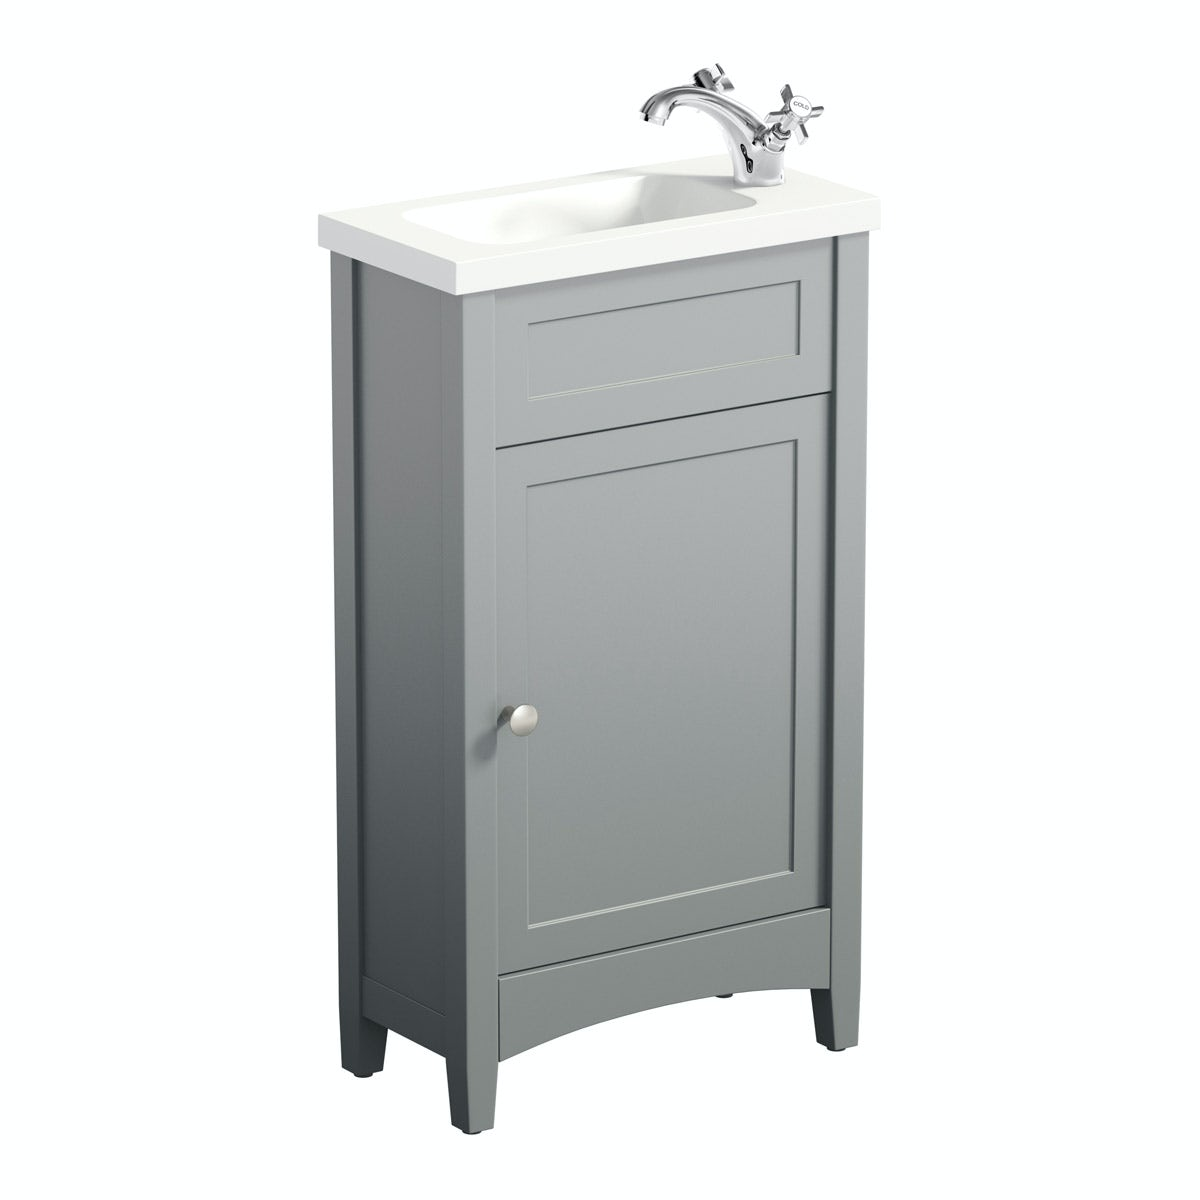 Camberley grey cloakroom furniture suite - Slim cloakroom basin ...